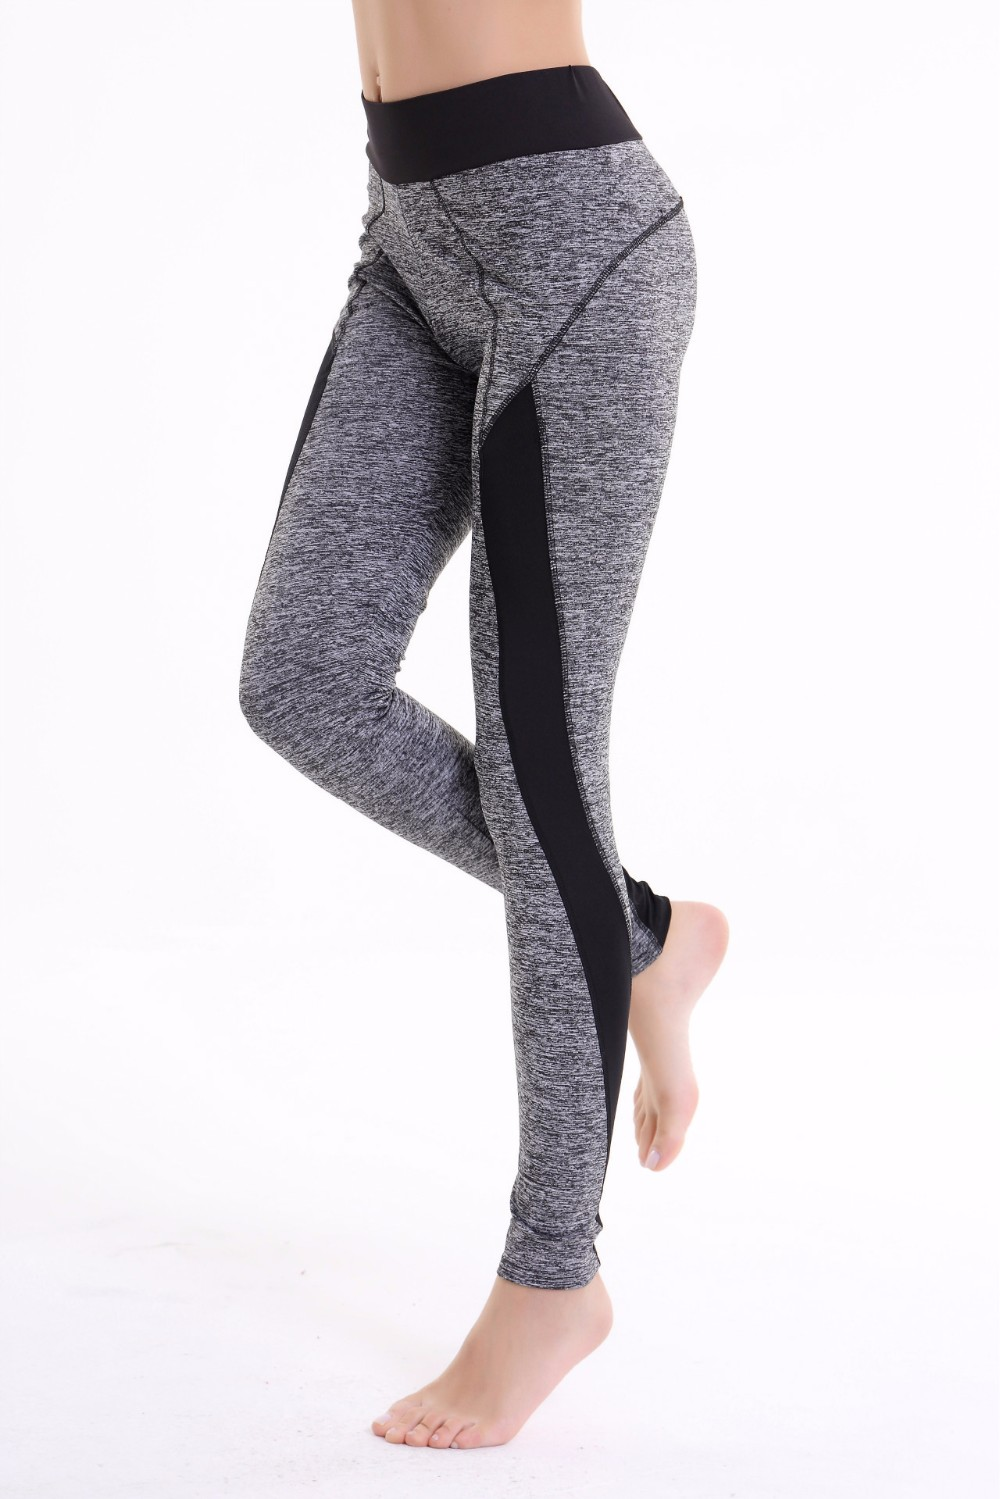 High Elasticity Women Yoga Pants Fitness SporTS Legging OEM Logo